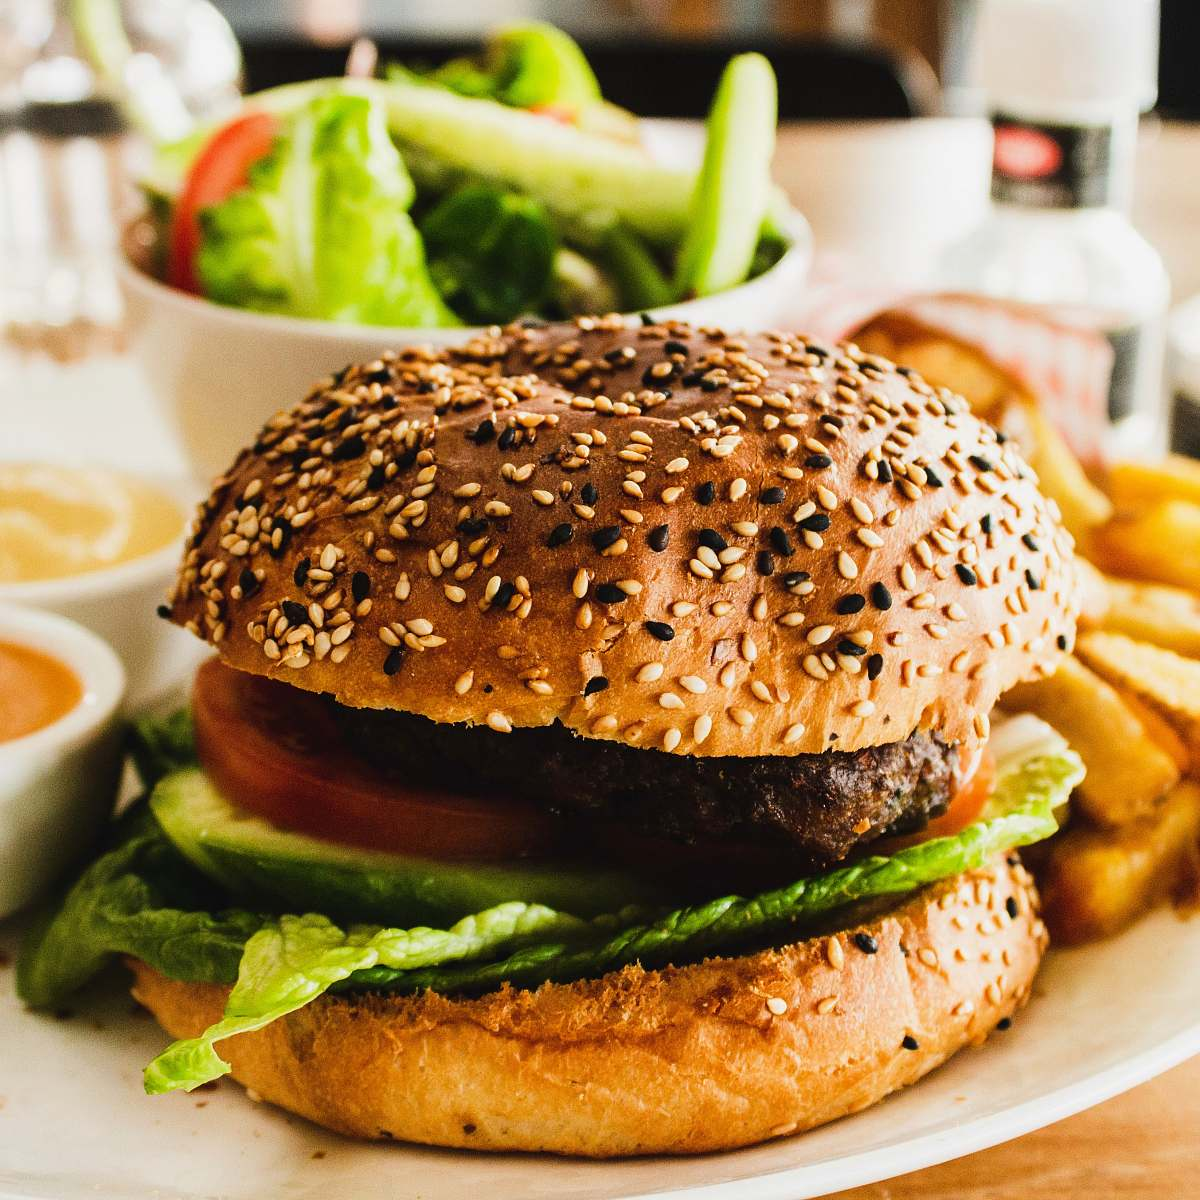 stock photos free  of burger burger with tomato, lettuce, and fries sesame